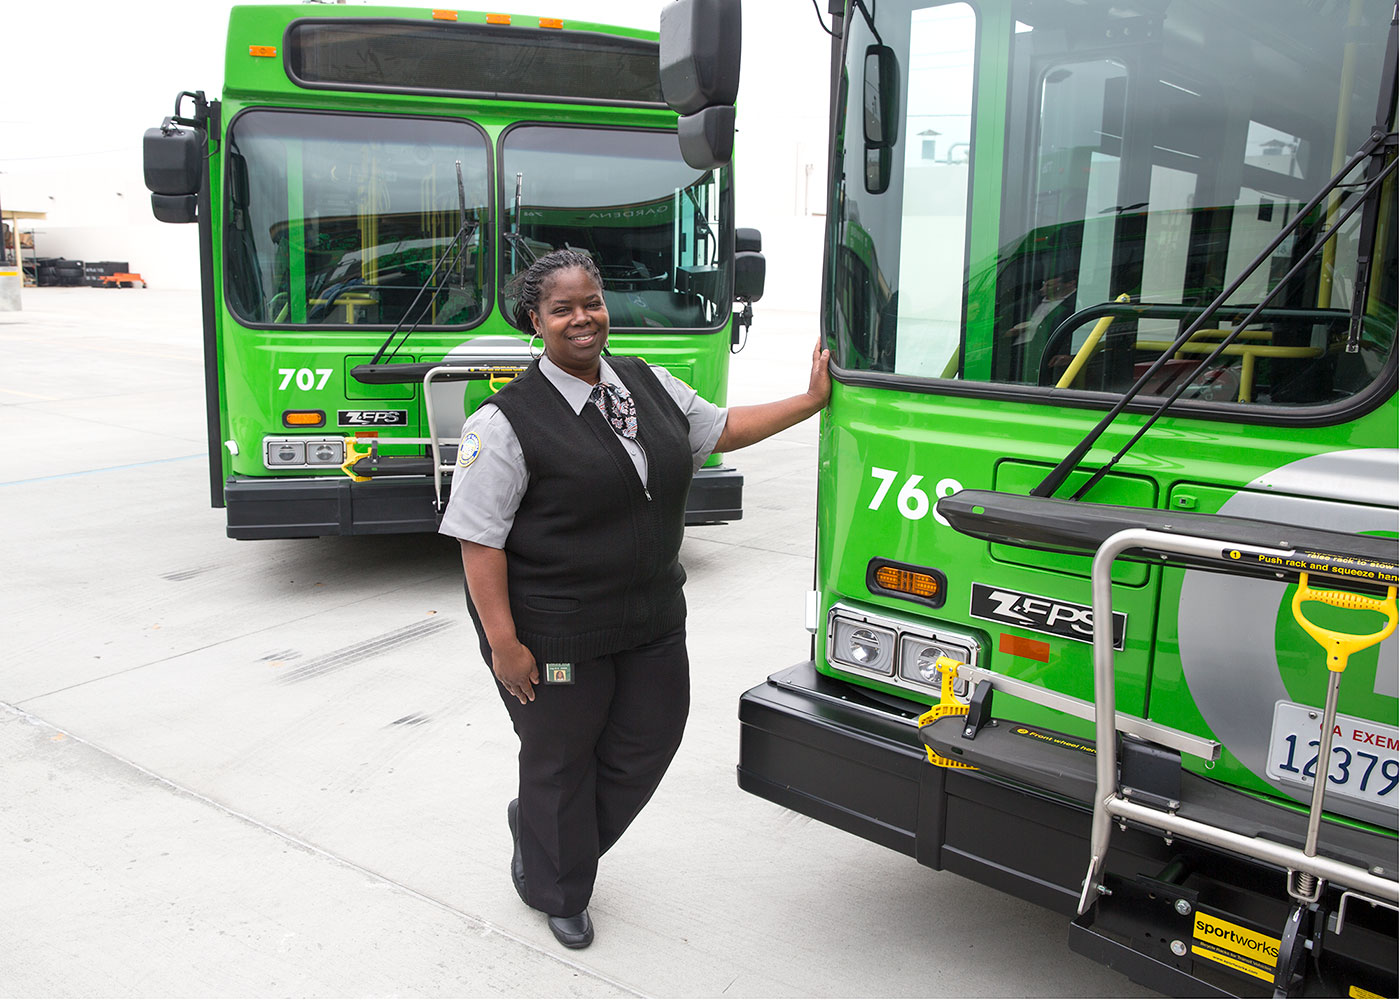 Electric bus and bus driver